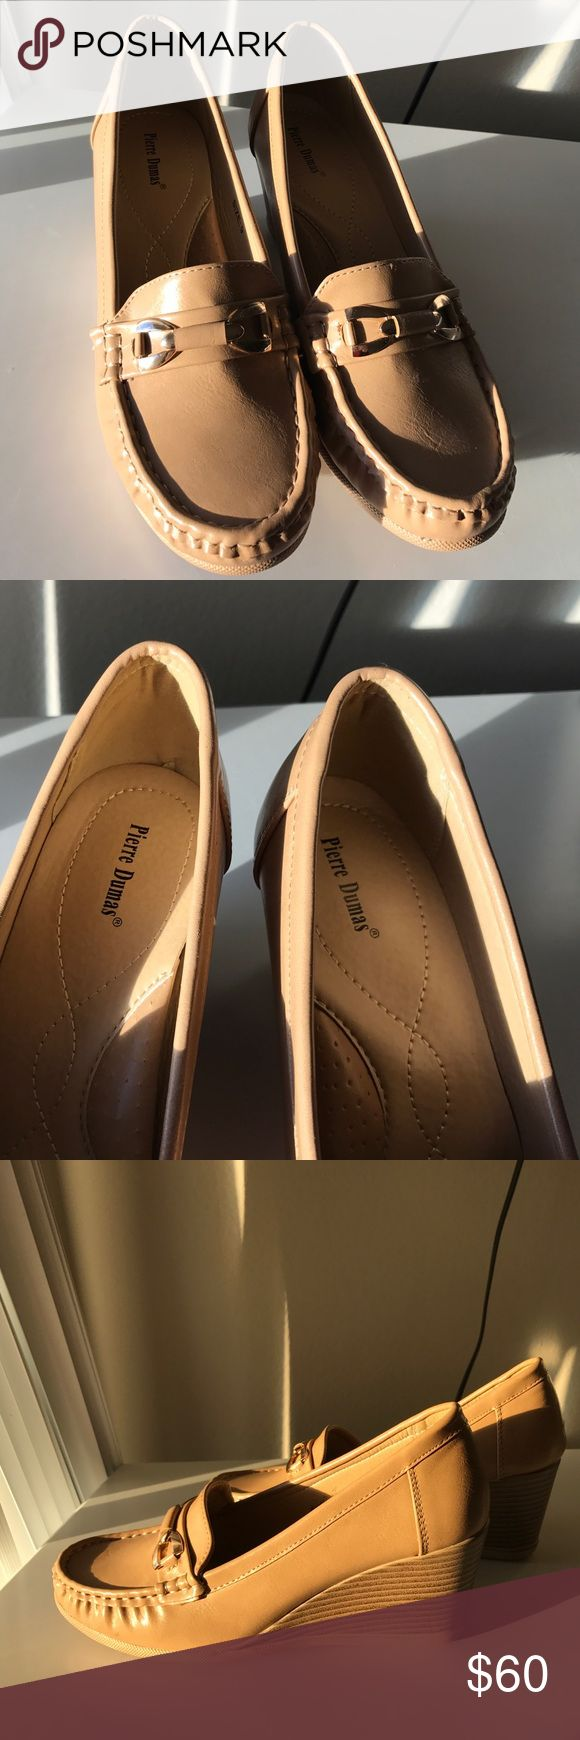 Reduced Price 🙂🙂Pierre Dumas wedge loafer Pierre Dumas brand new wedge loafer Pierre Dumas Shoes Wedges